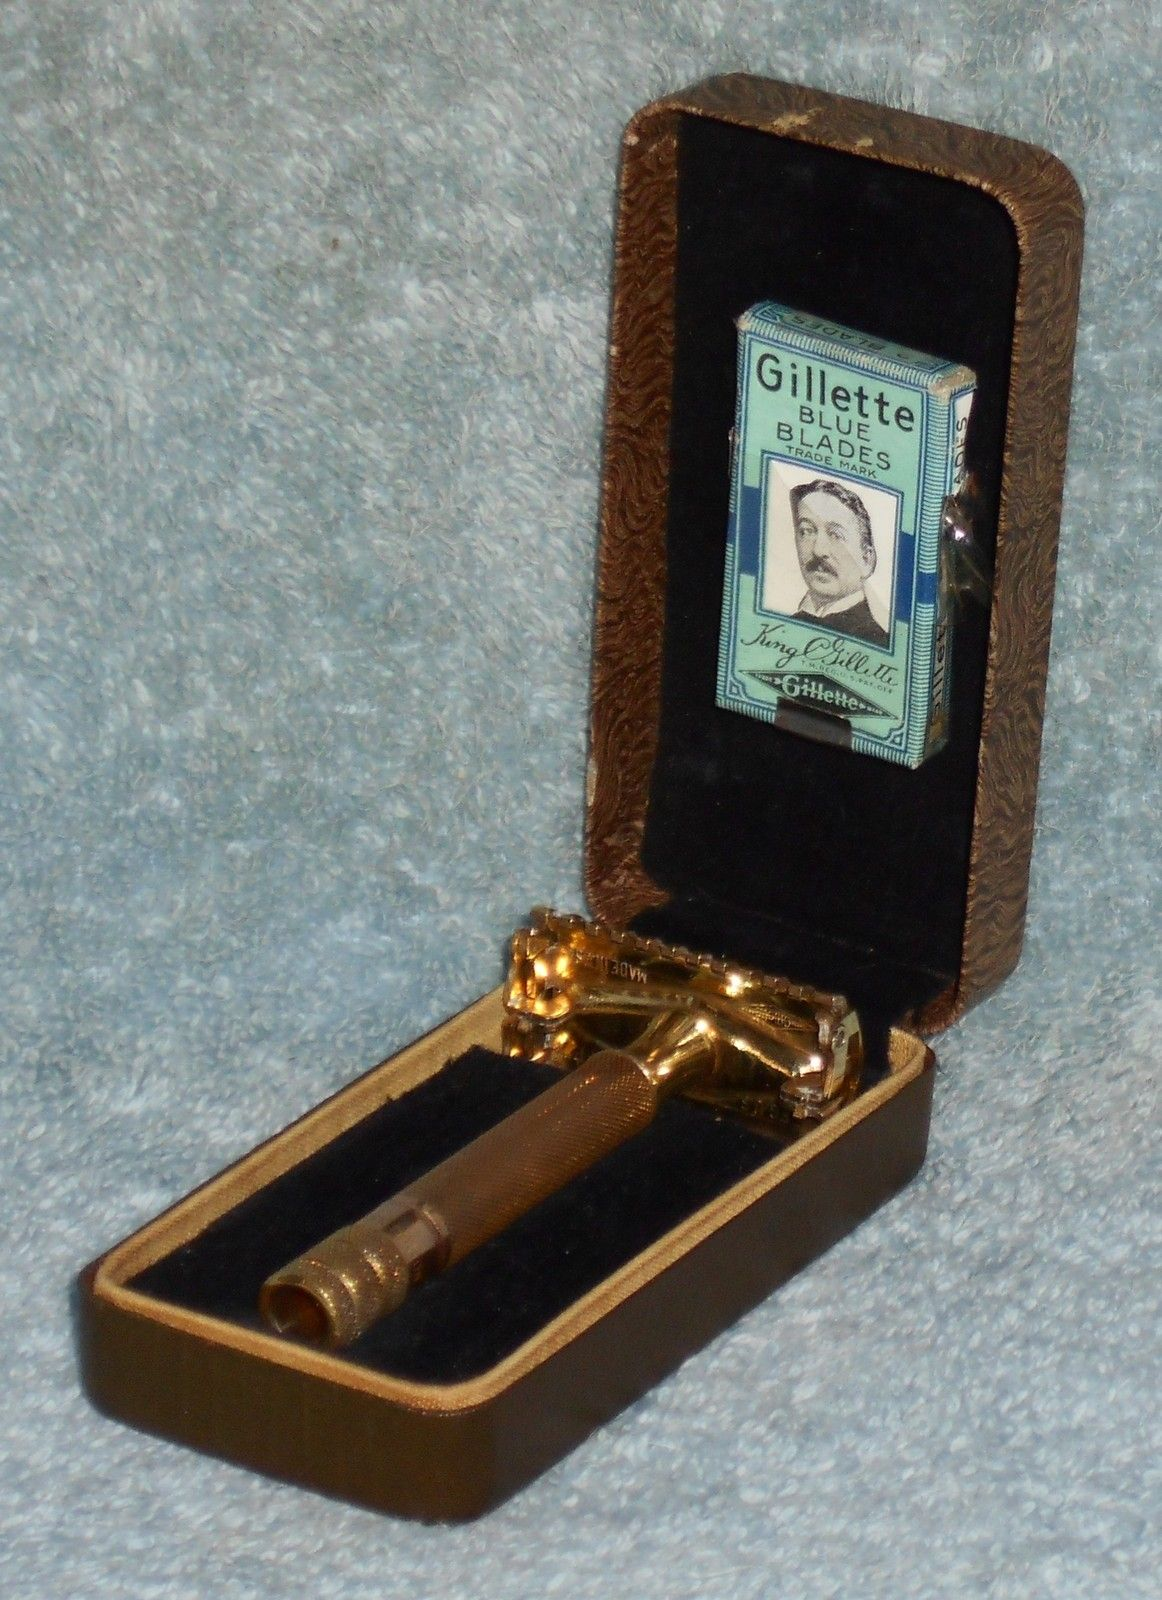 Pin by Rick Andrews on 1937 Gillette Sheraton Safety Razor